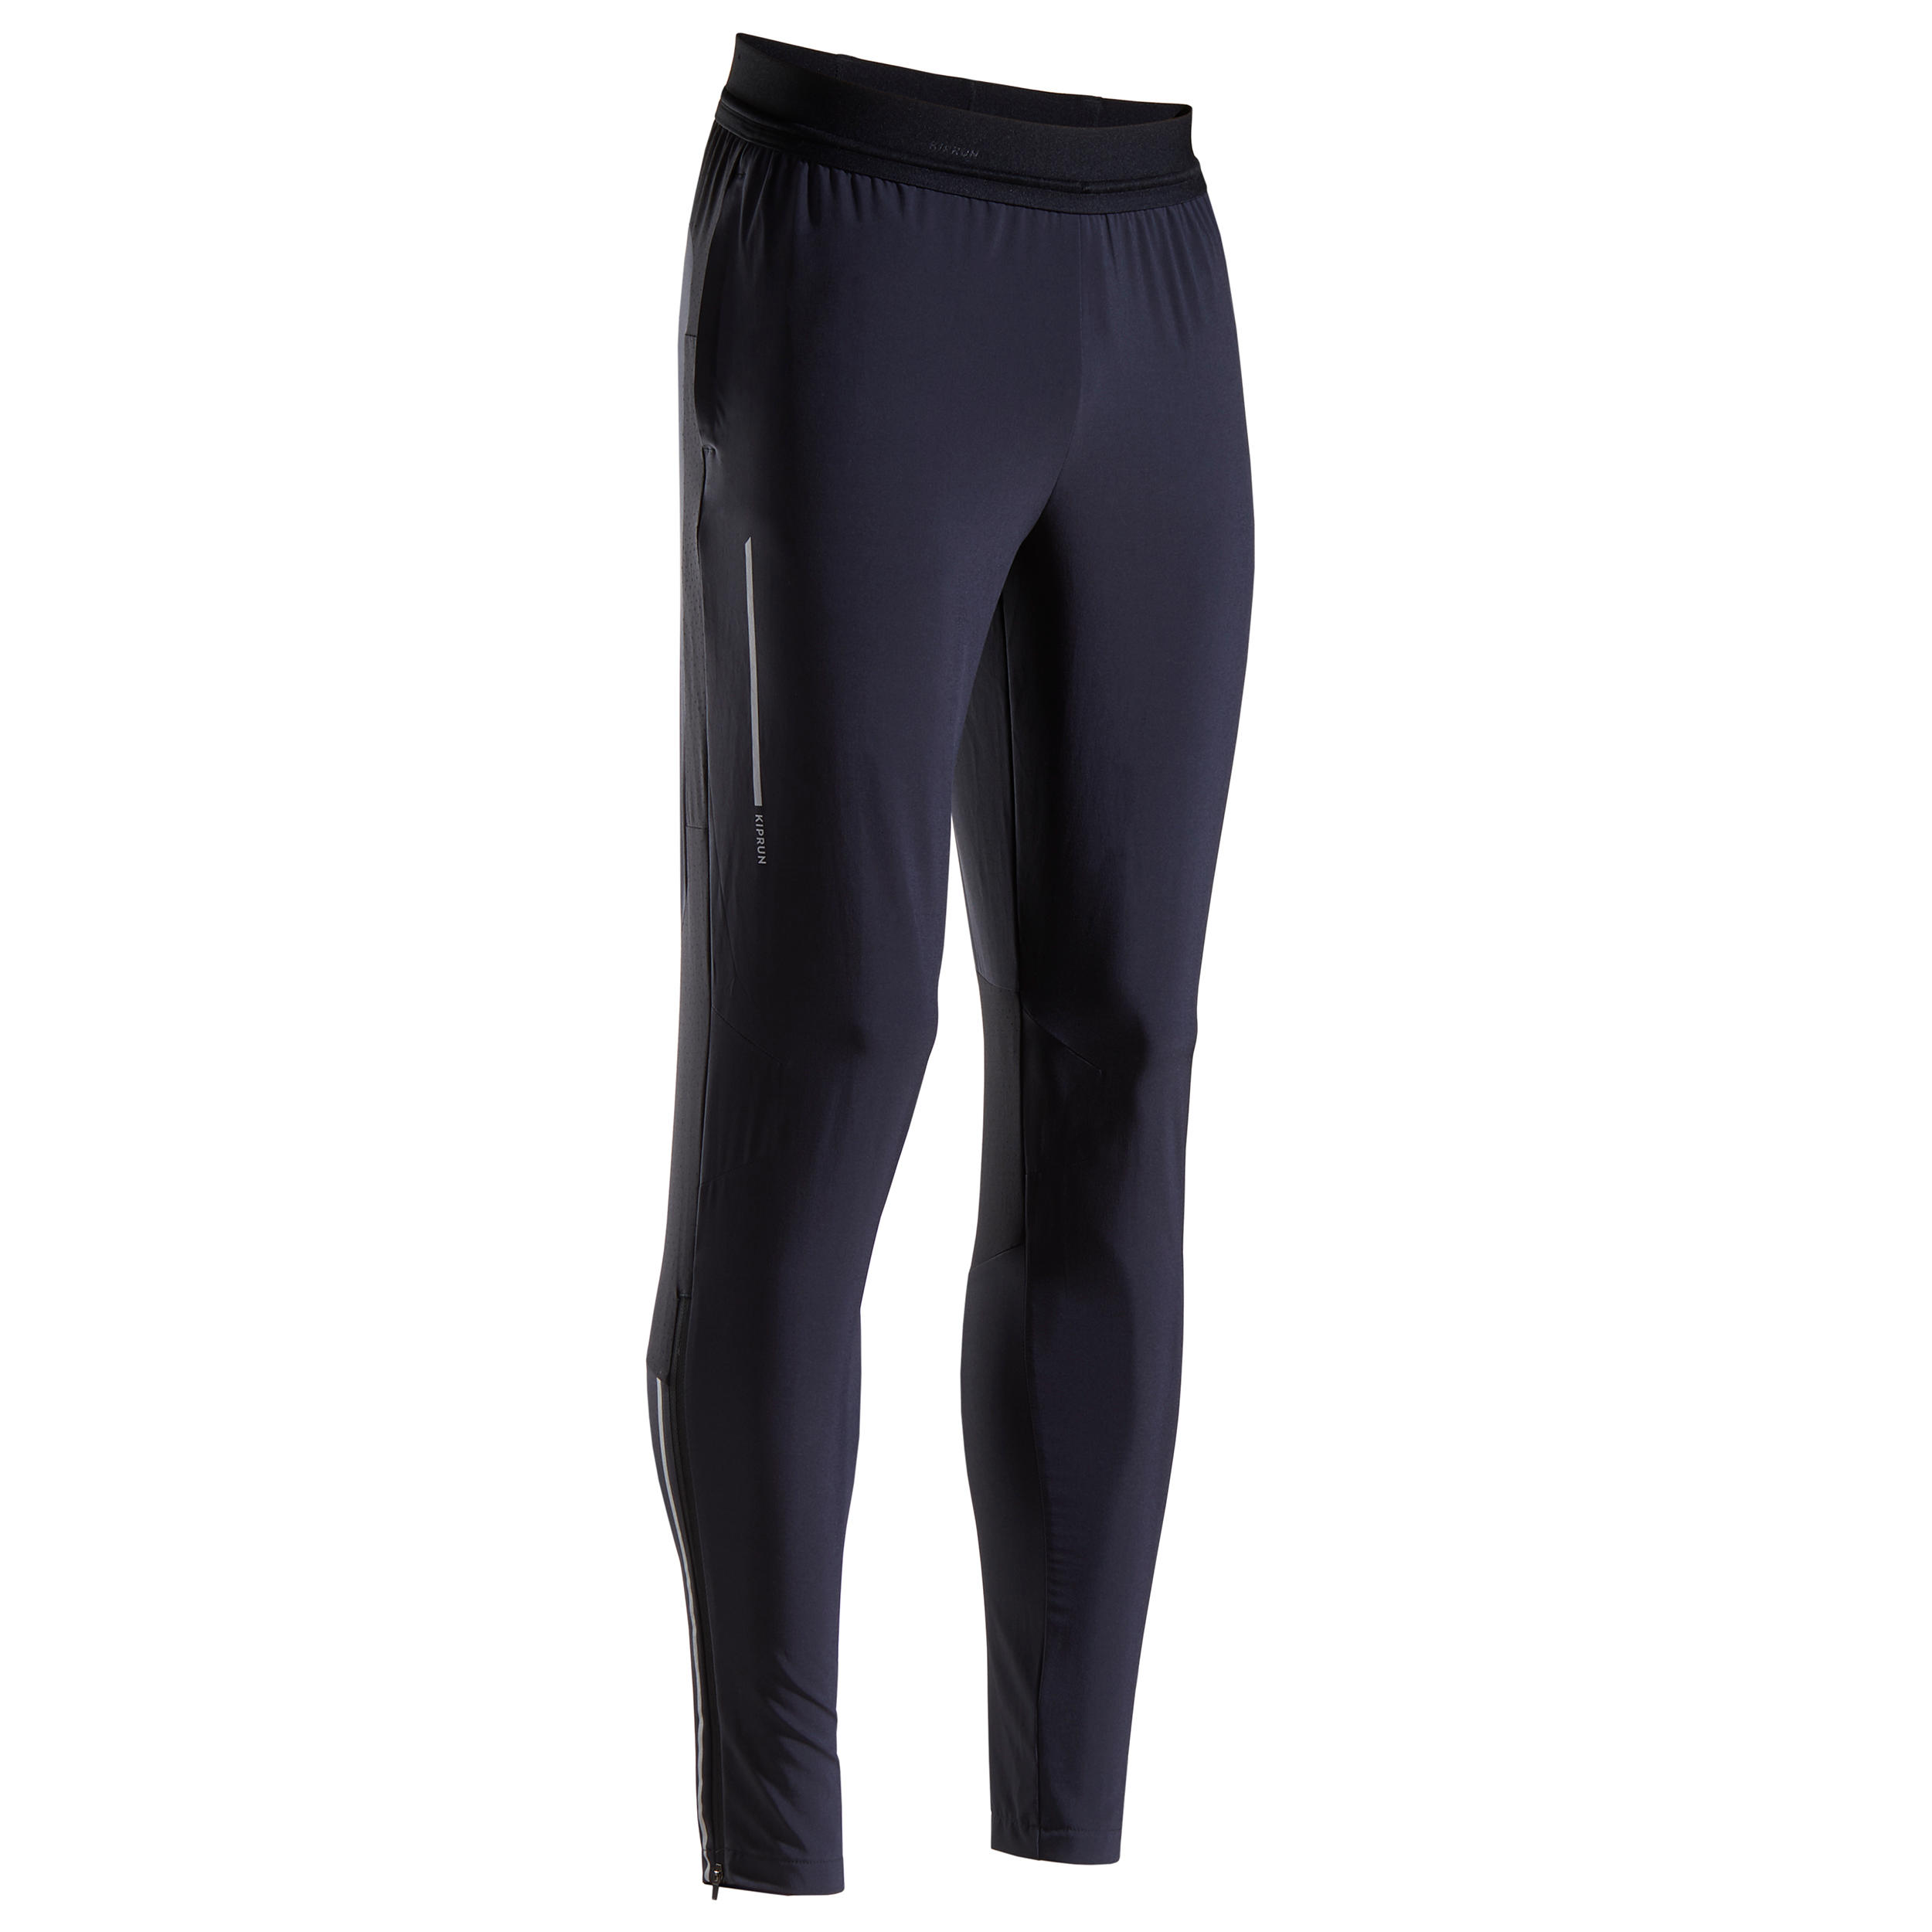 Pantalon Alergare Kiprun Light imagine